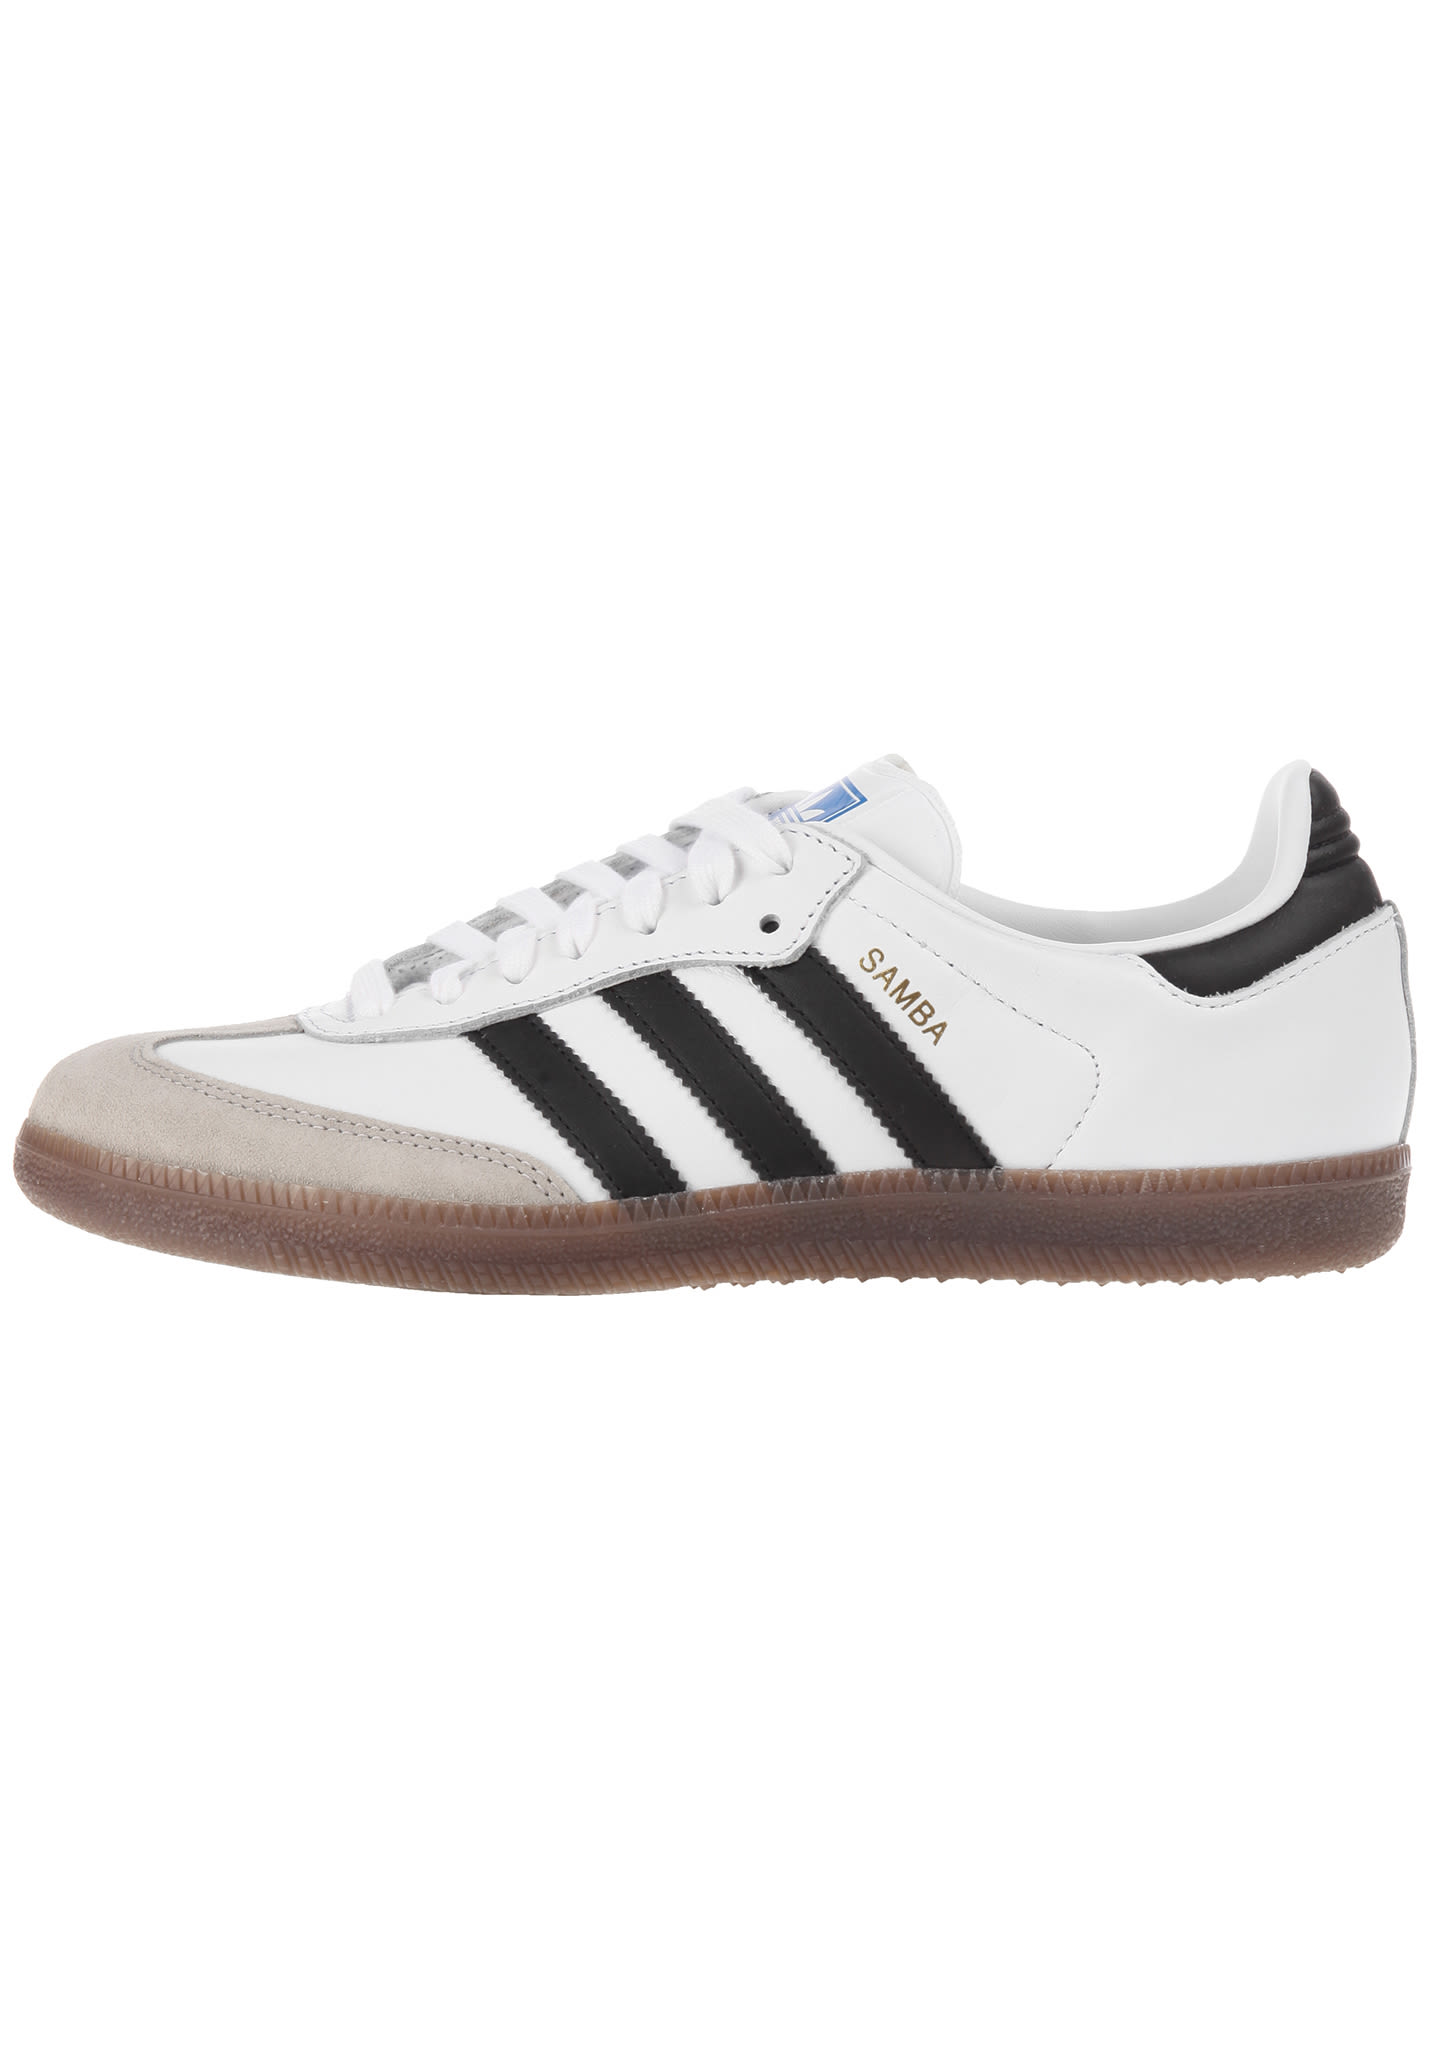 buy online dab4e 1661d ADIDAS ORIGINALS Samba OG - Zapatillas - Blanco - Planet Sports